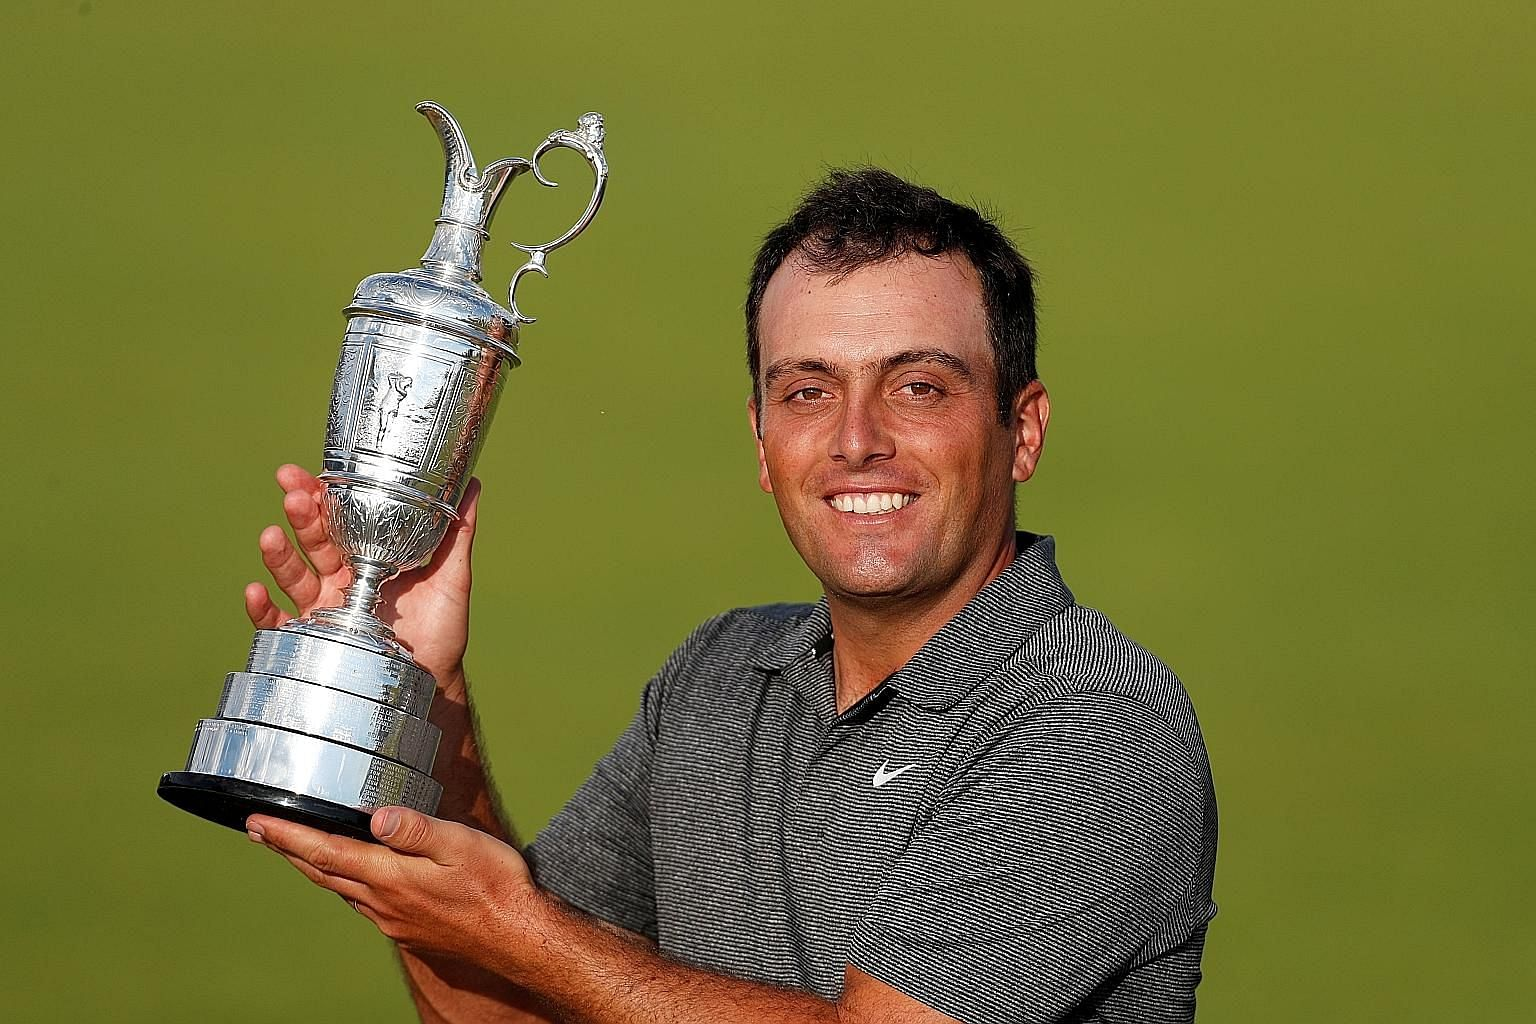 Francesco Molinari became the first Italian to win a golf Major when he triumphed at the 147th Open Championship in July this year.